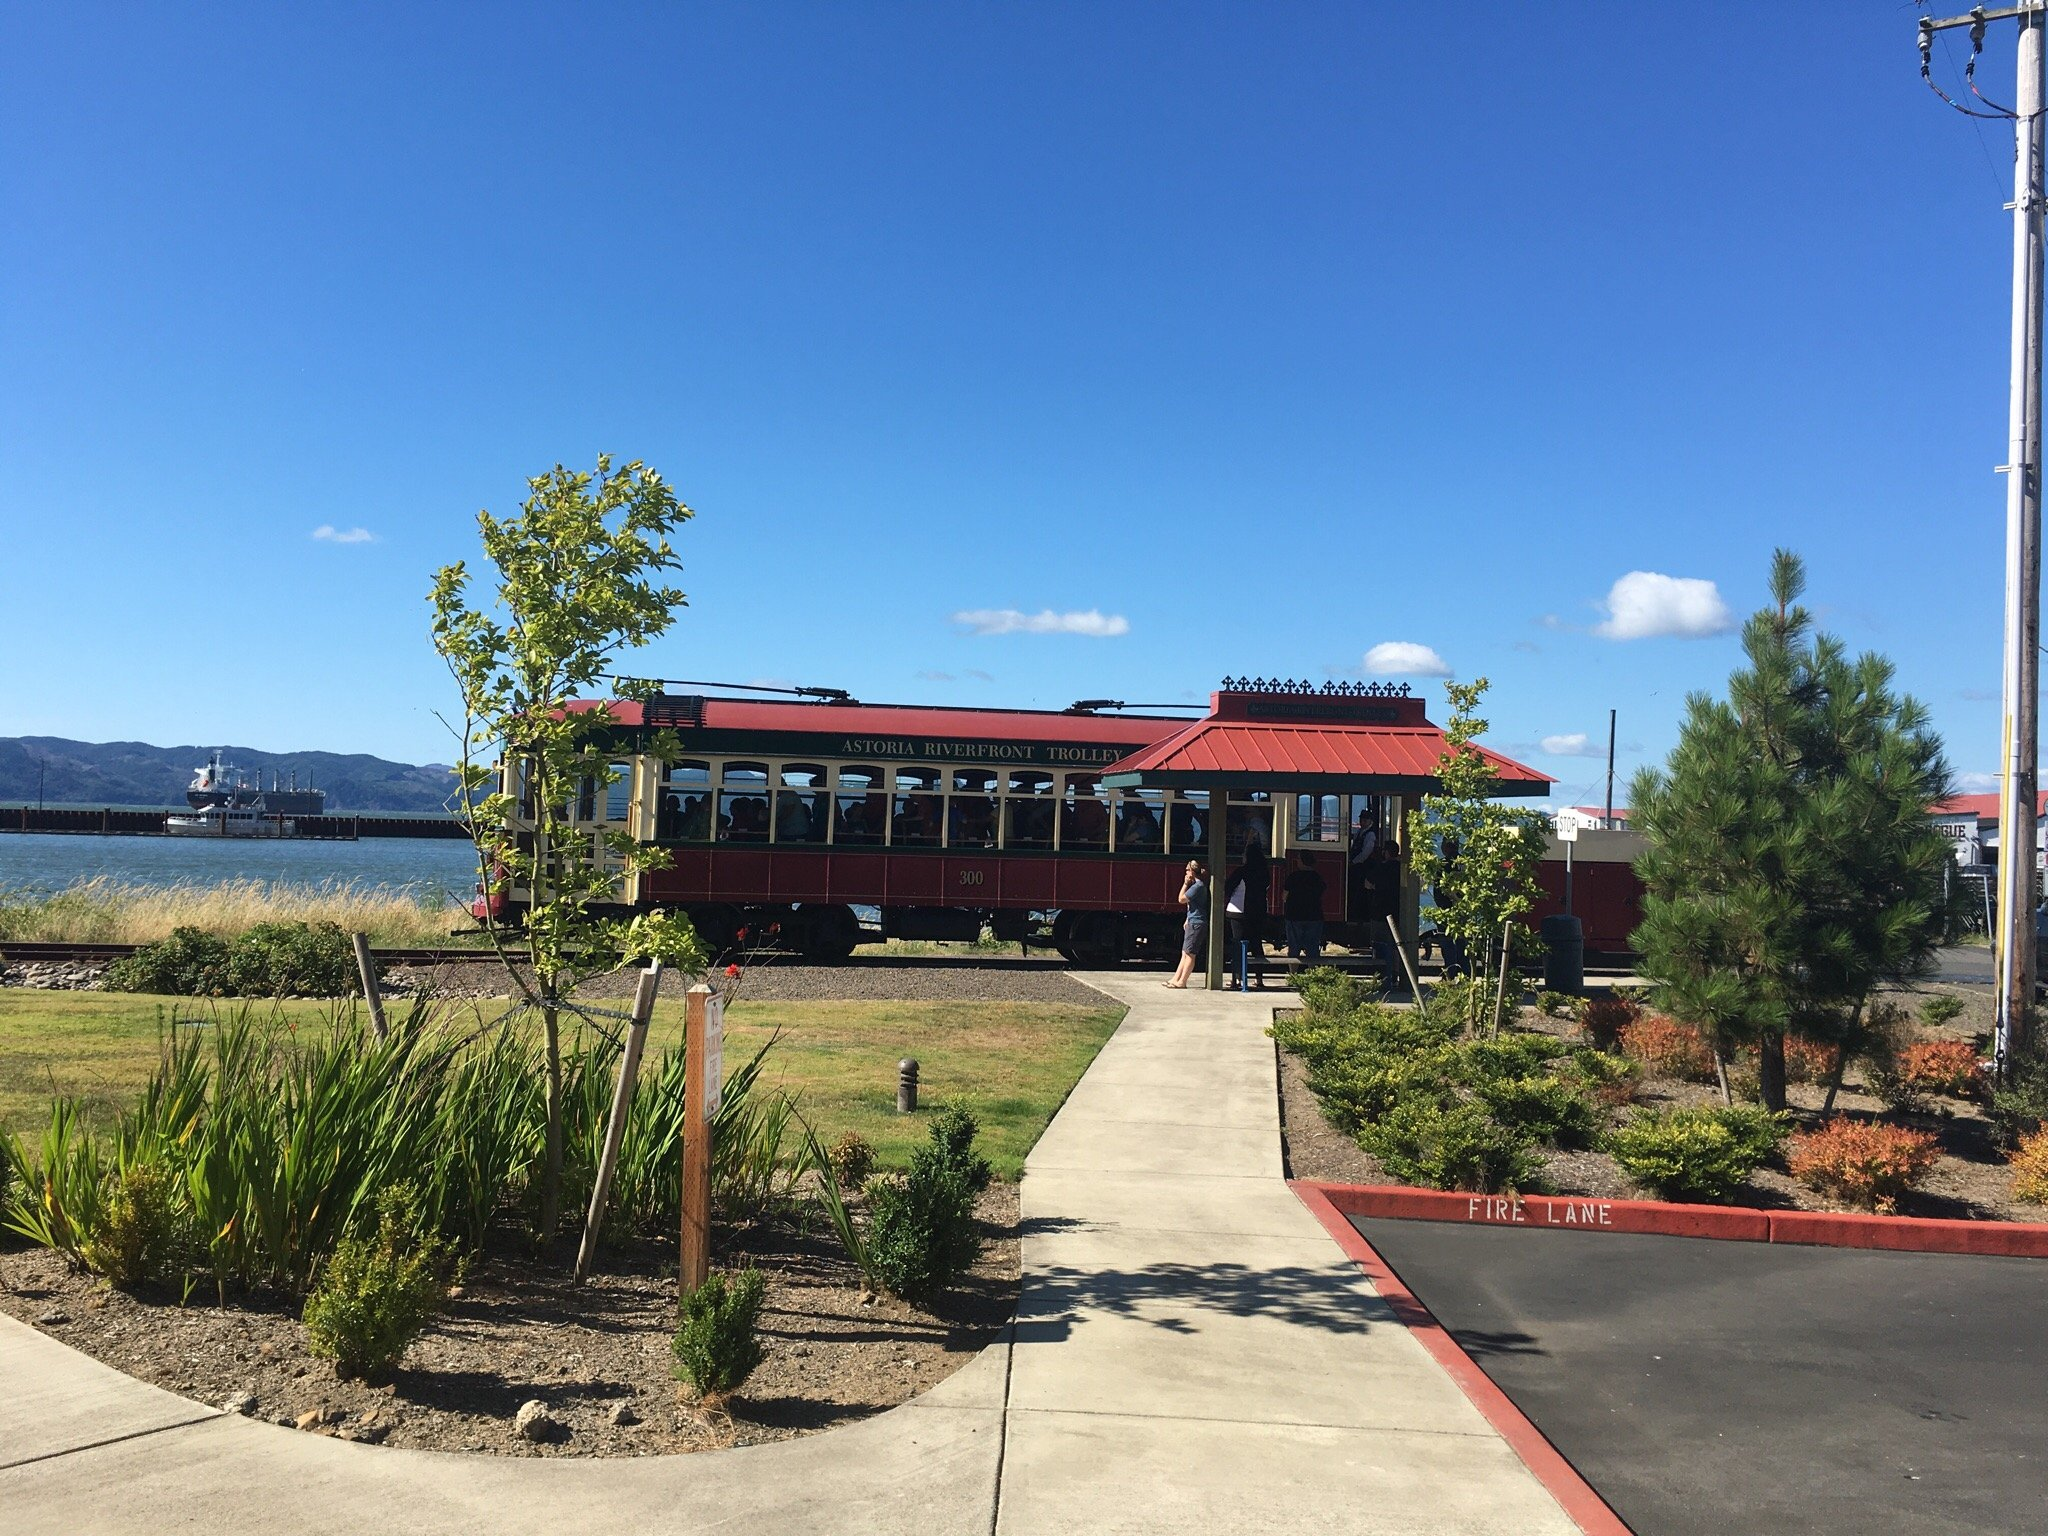 Astoria, site to see . Fort Clastop, Lewis and Clark Monument and Trolley car.